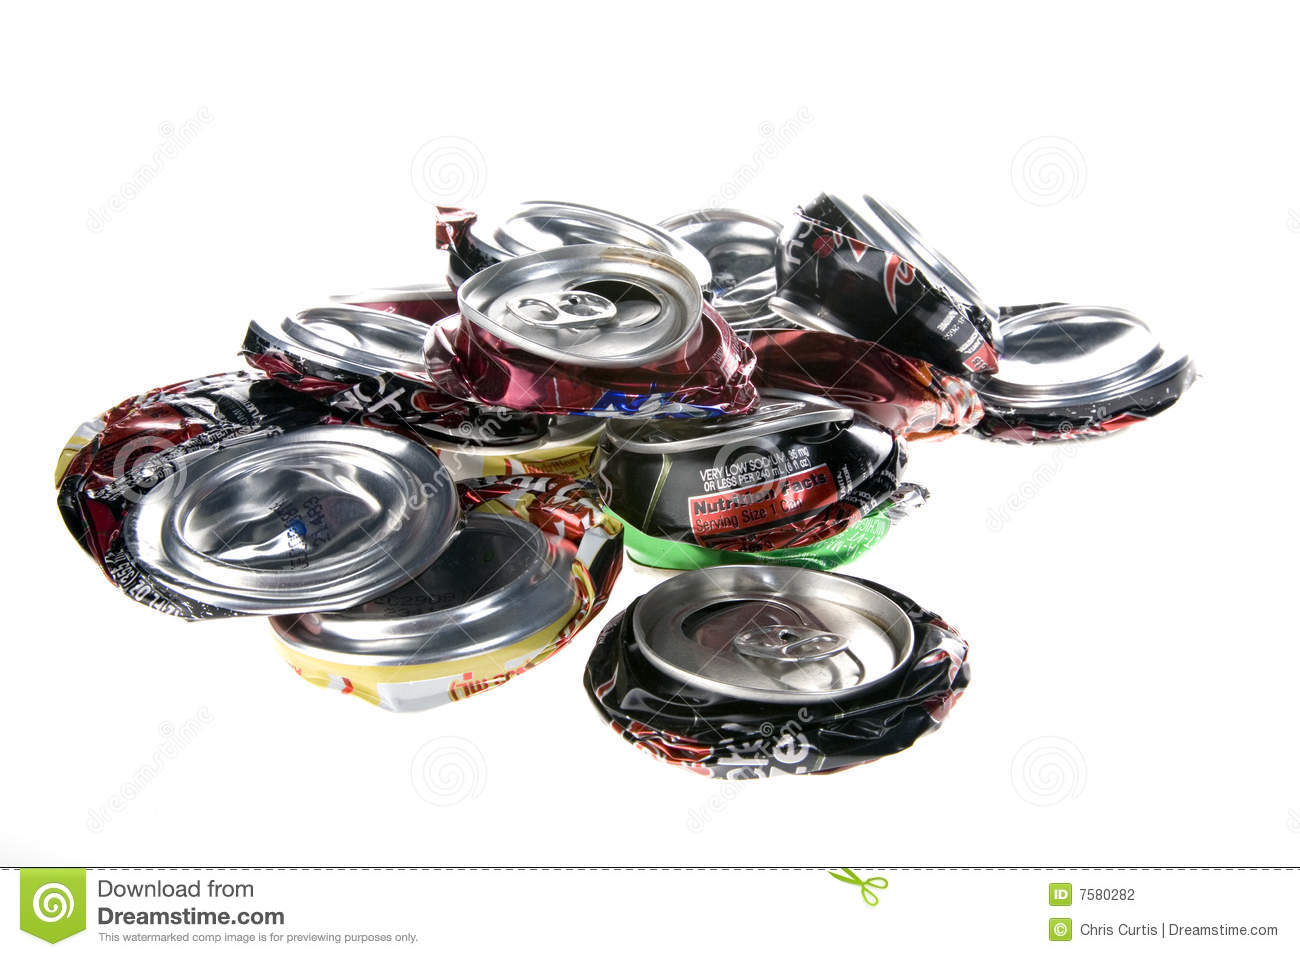 crushed-pop-cans-7580282.jpg